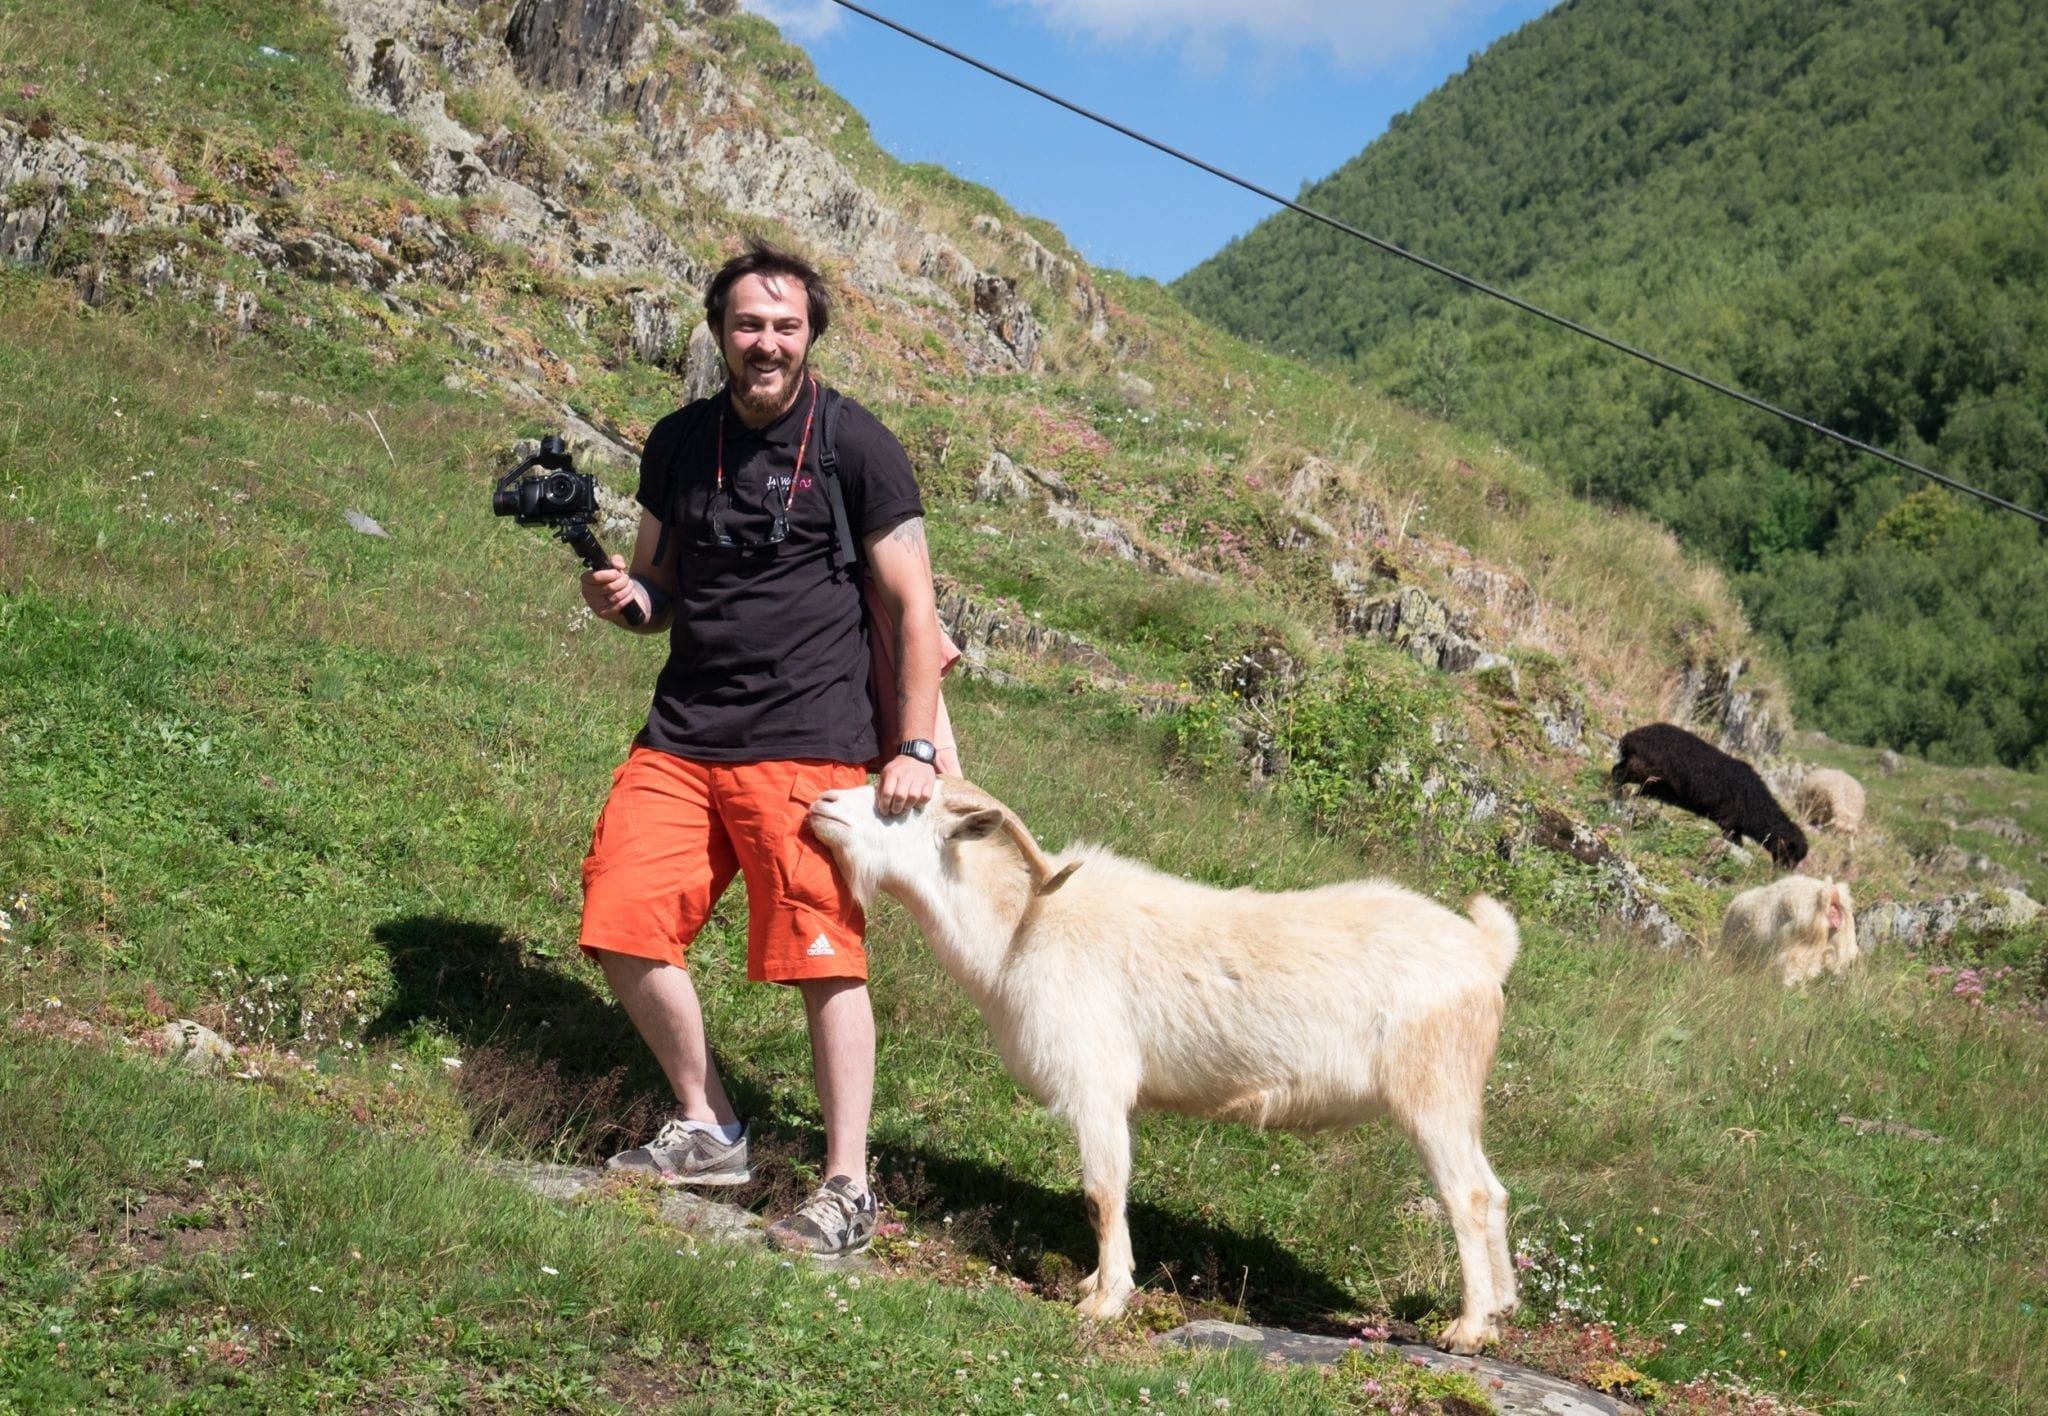 Jayway guide Gio stands on a hillside with a camera and gimbal in one hand and a goat nuzzling his hip. He strokes the goat's head and laughs.